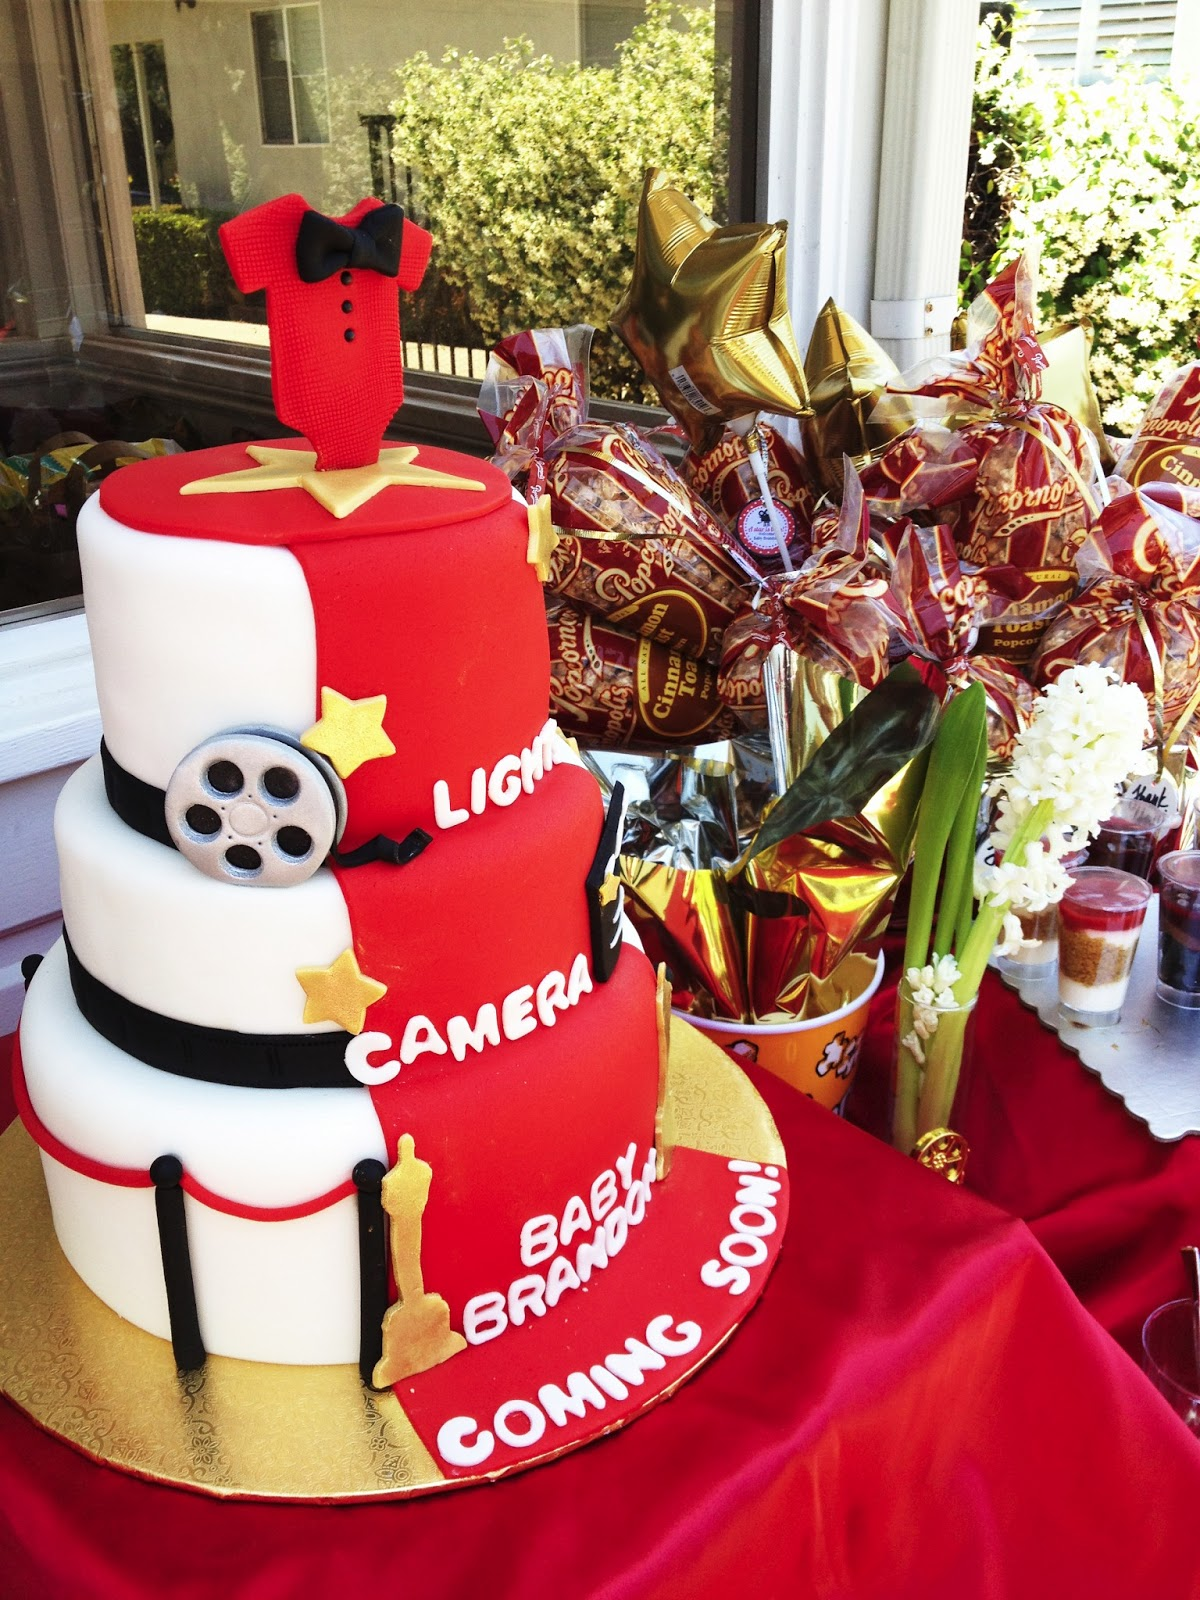 event scenes from a hollywood themed baby shower haute khuuture